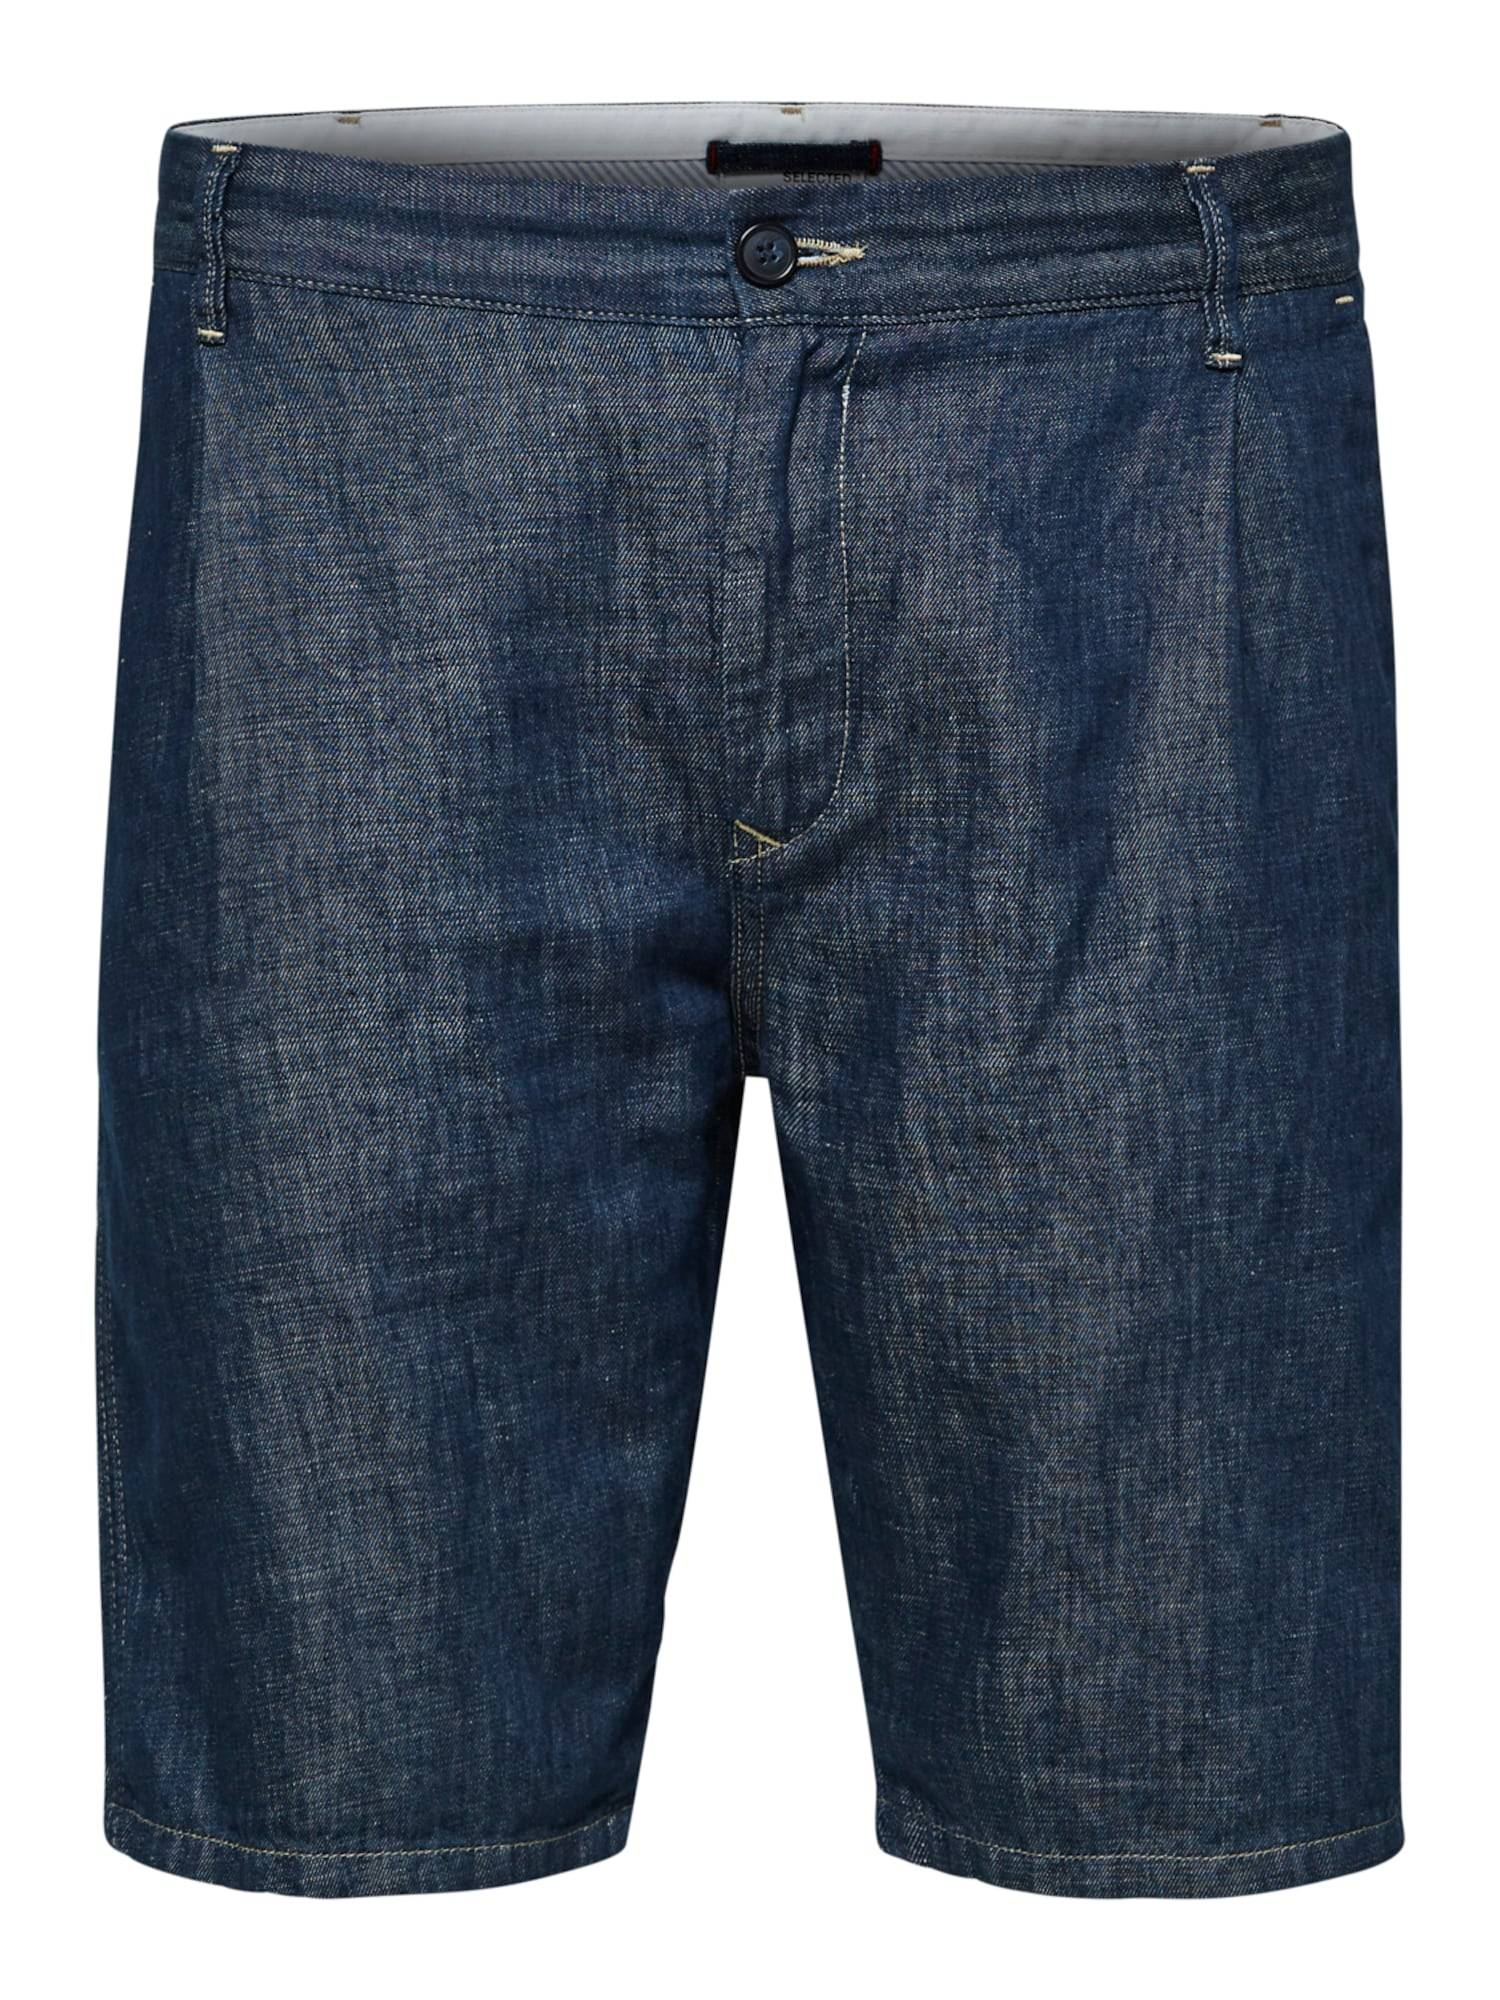 SELECTED HOMME Jean à pince 'Clay'  - Bleu - Taille: S - male